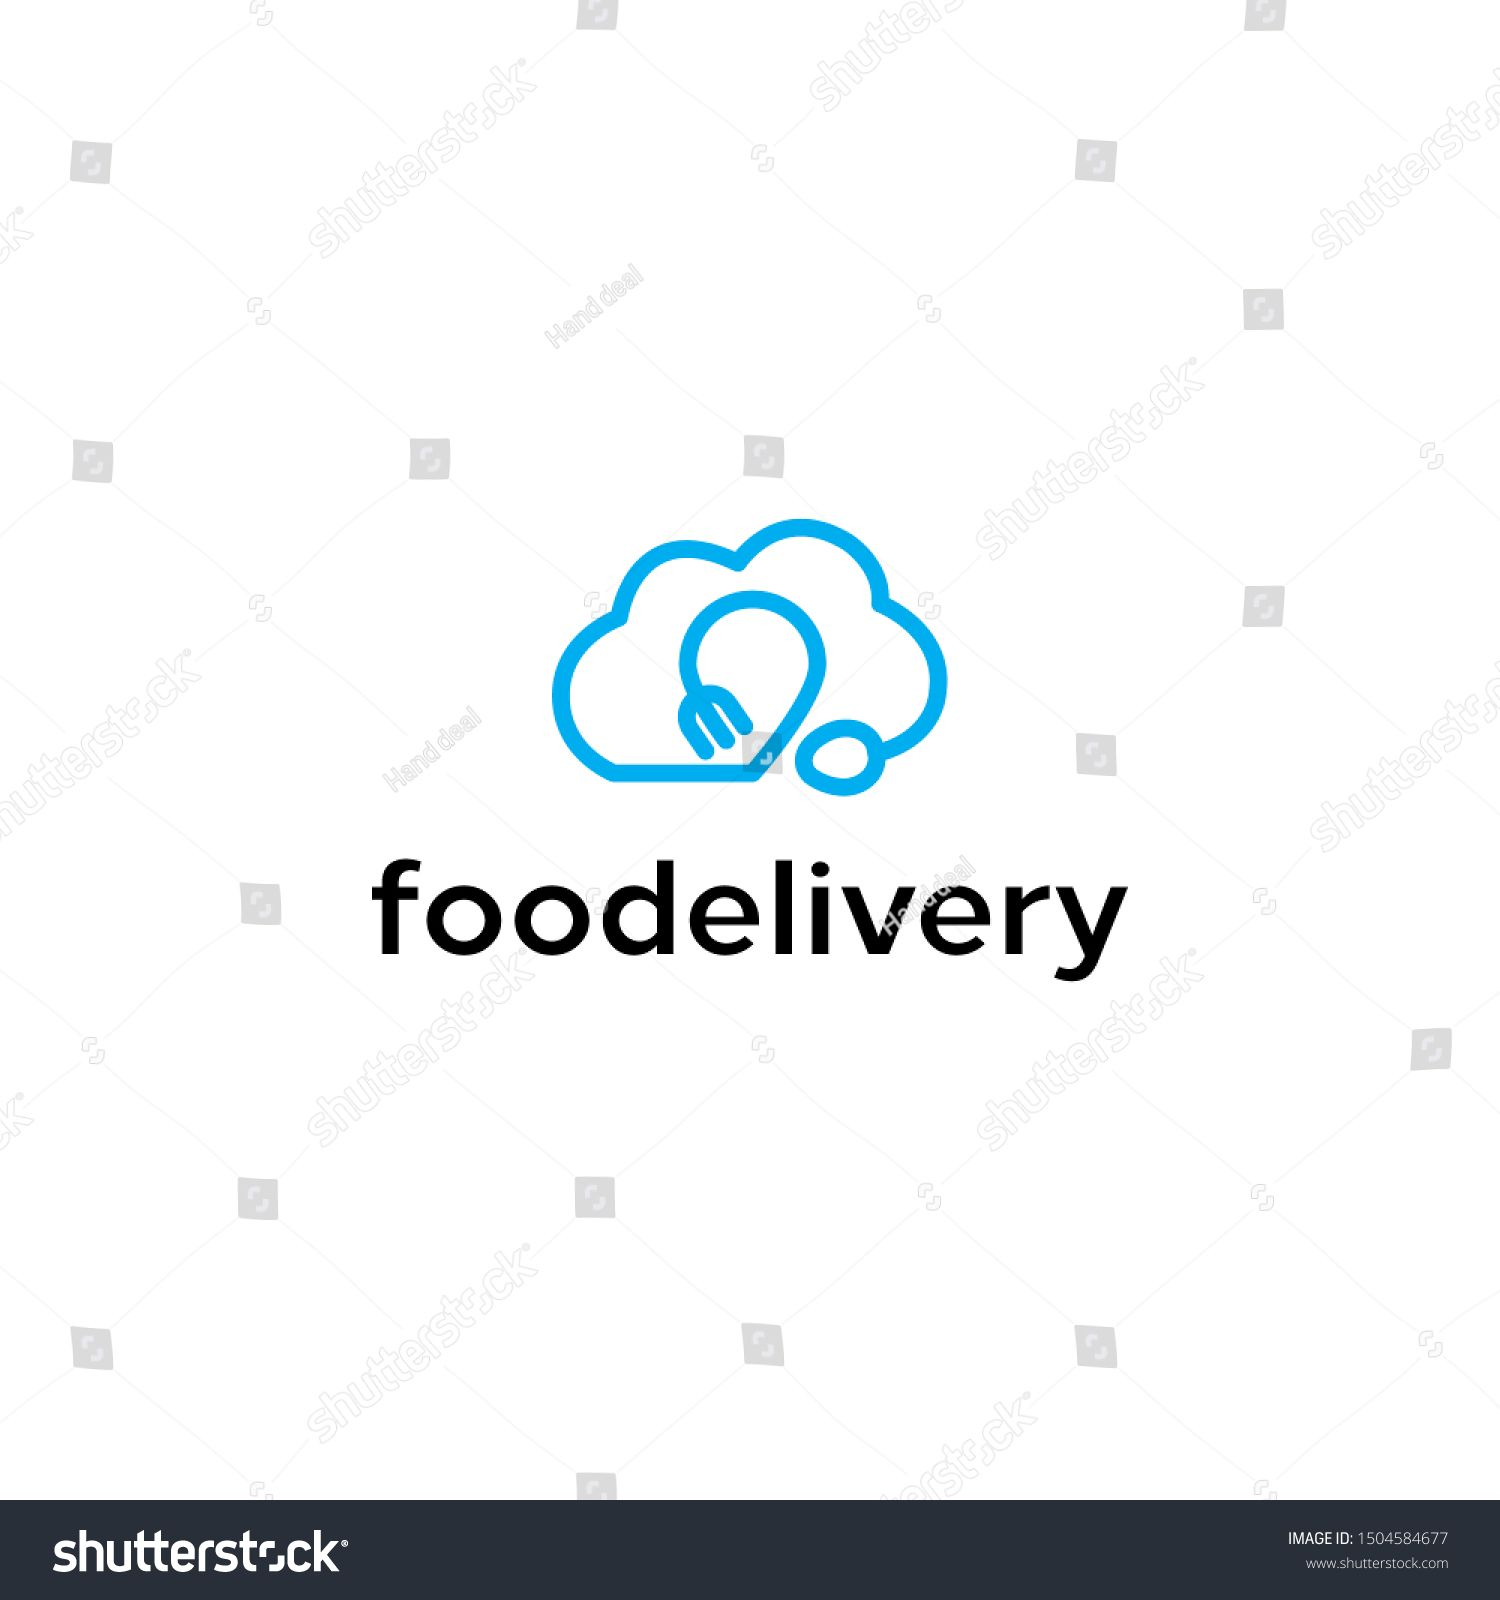 spoon and fork forming cloud and position or map pin idea logo concept design. vector icon eps10. unique illustration inspiration with mono line style. fresh and cool food and drink delivery logos. #Sponsored , #SPONSORED, #concept#logo#idea#icon